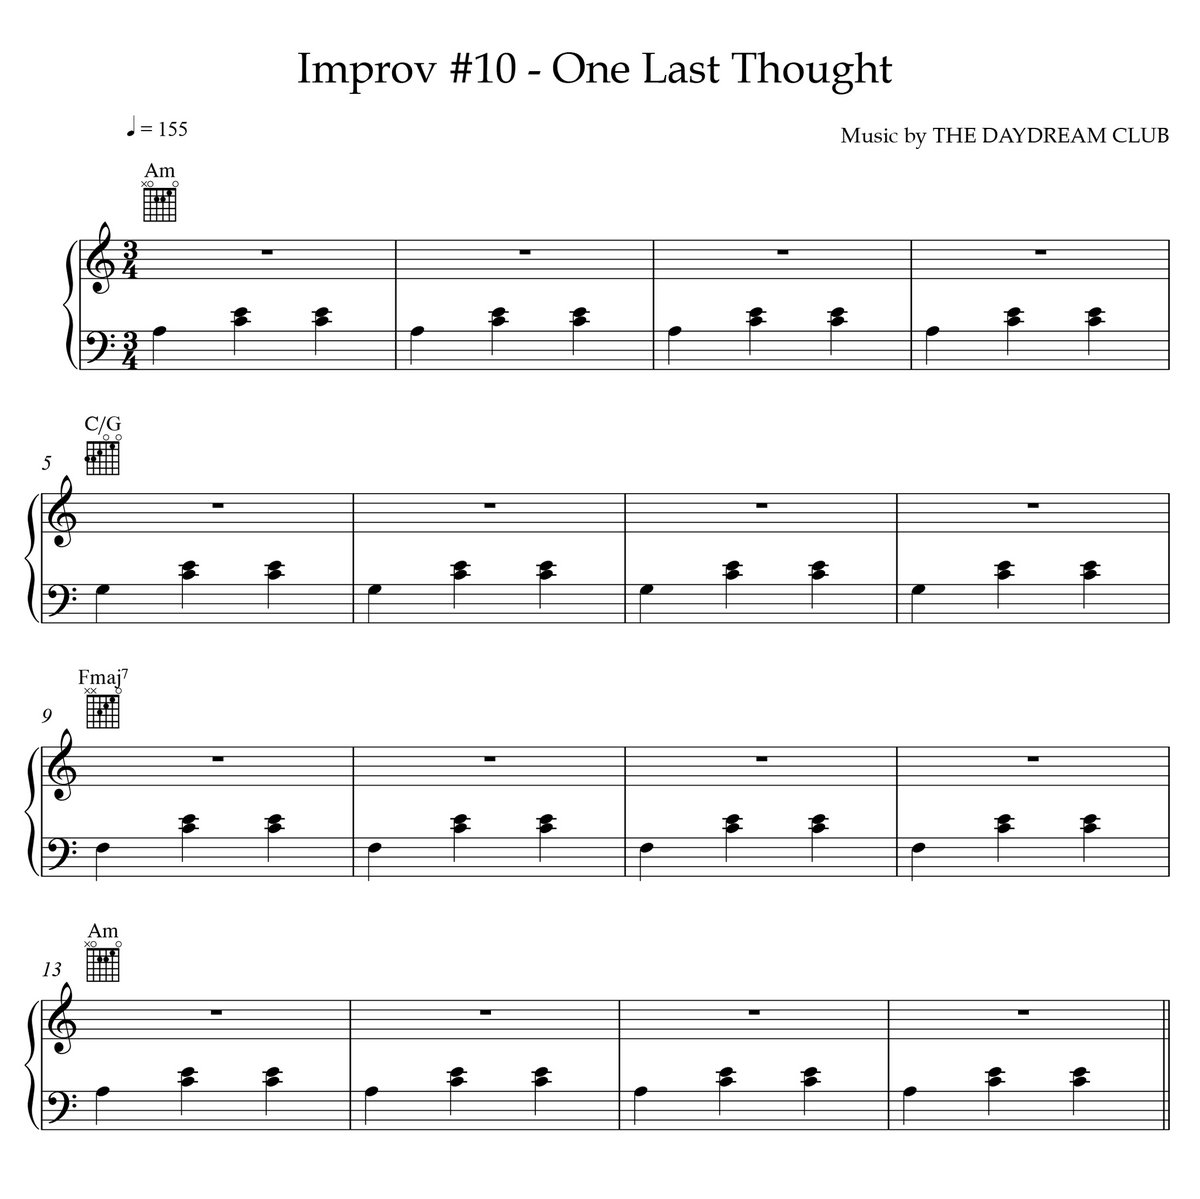 Improv #10 - One Last Thought (Sheet Music + Track Download) | The